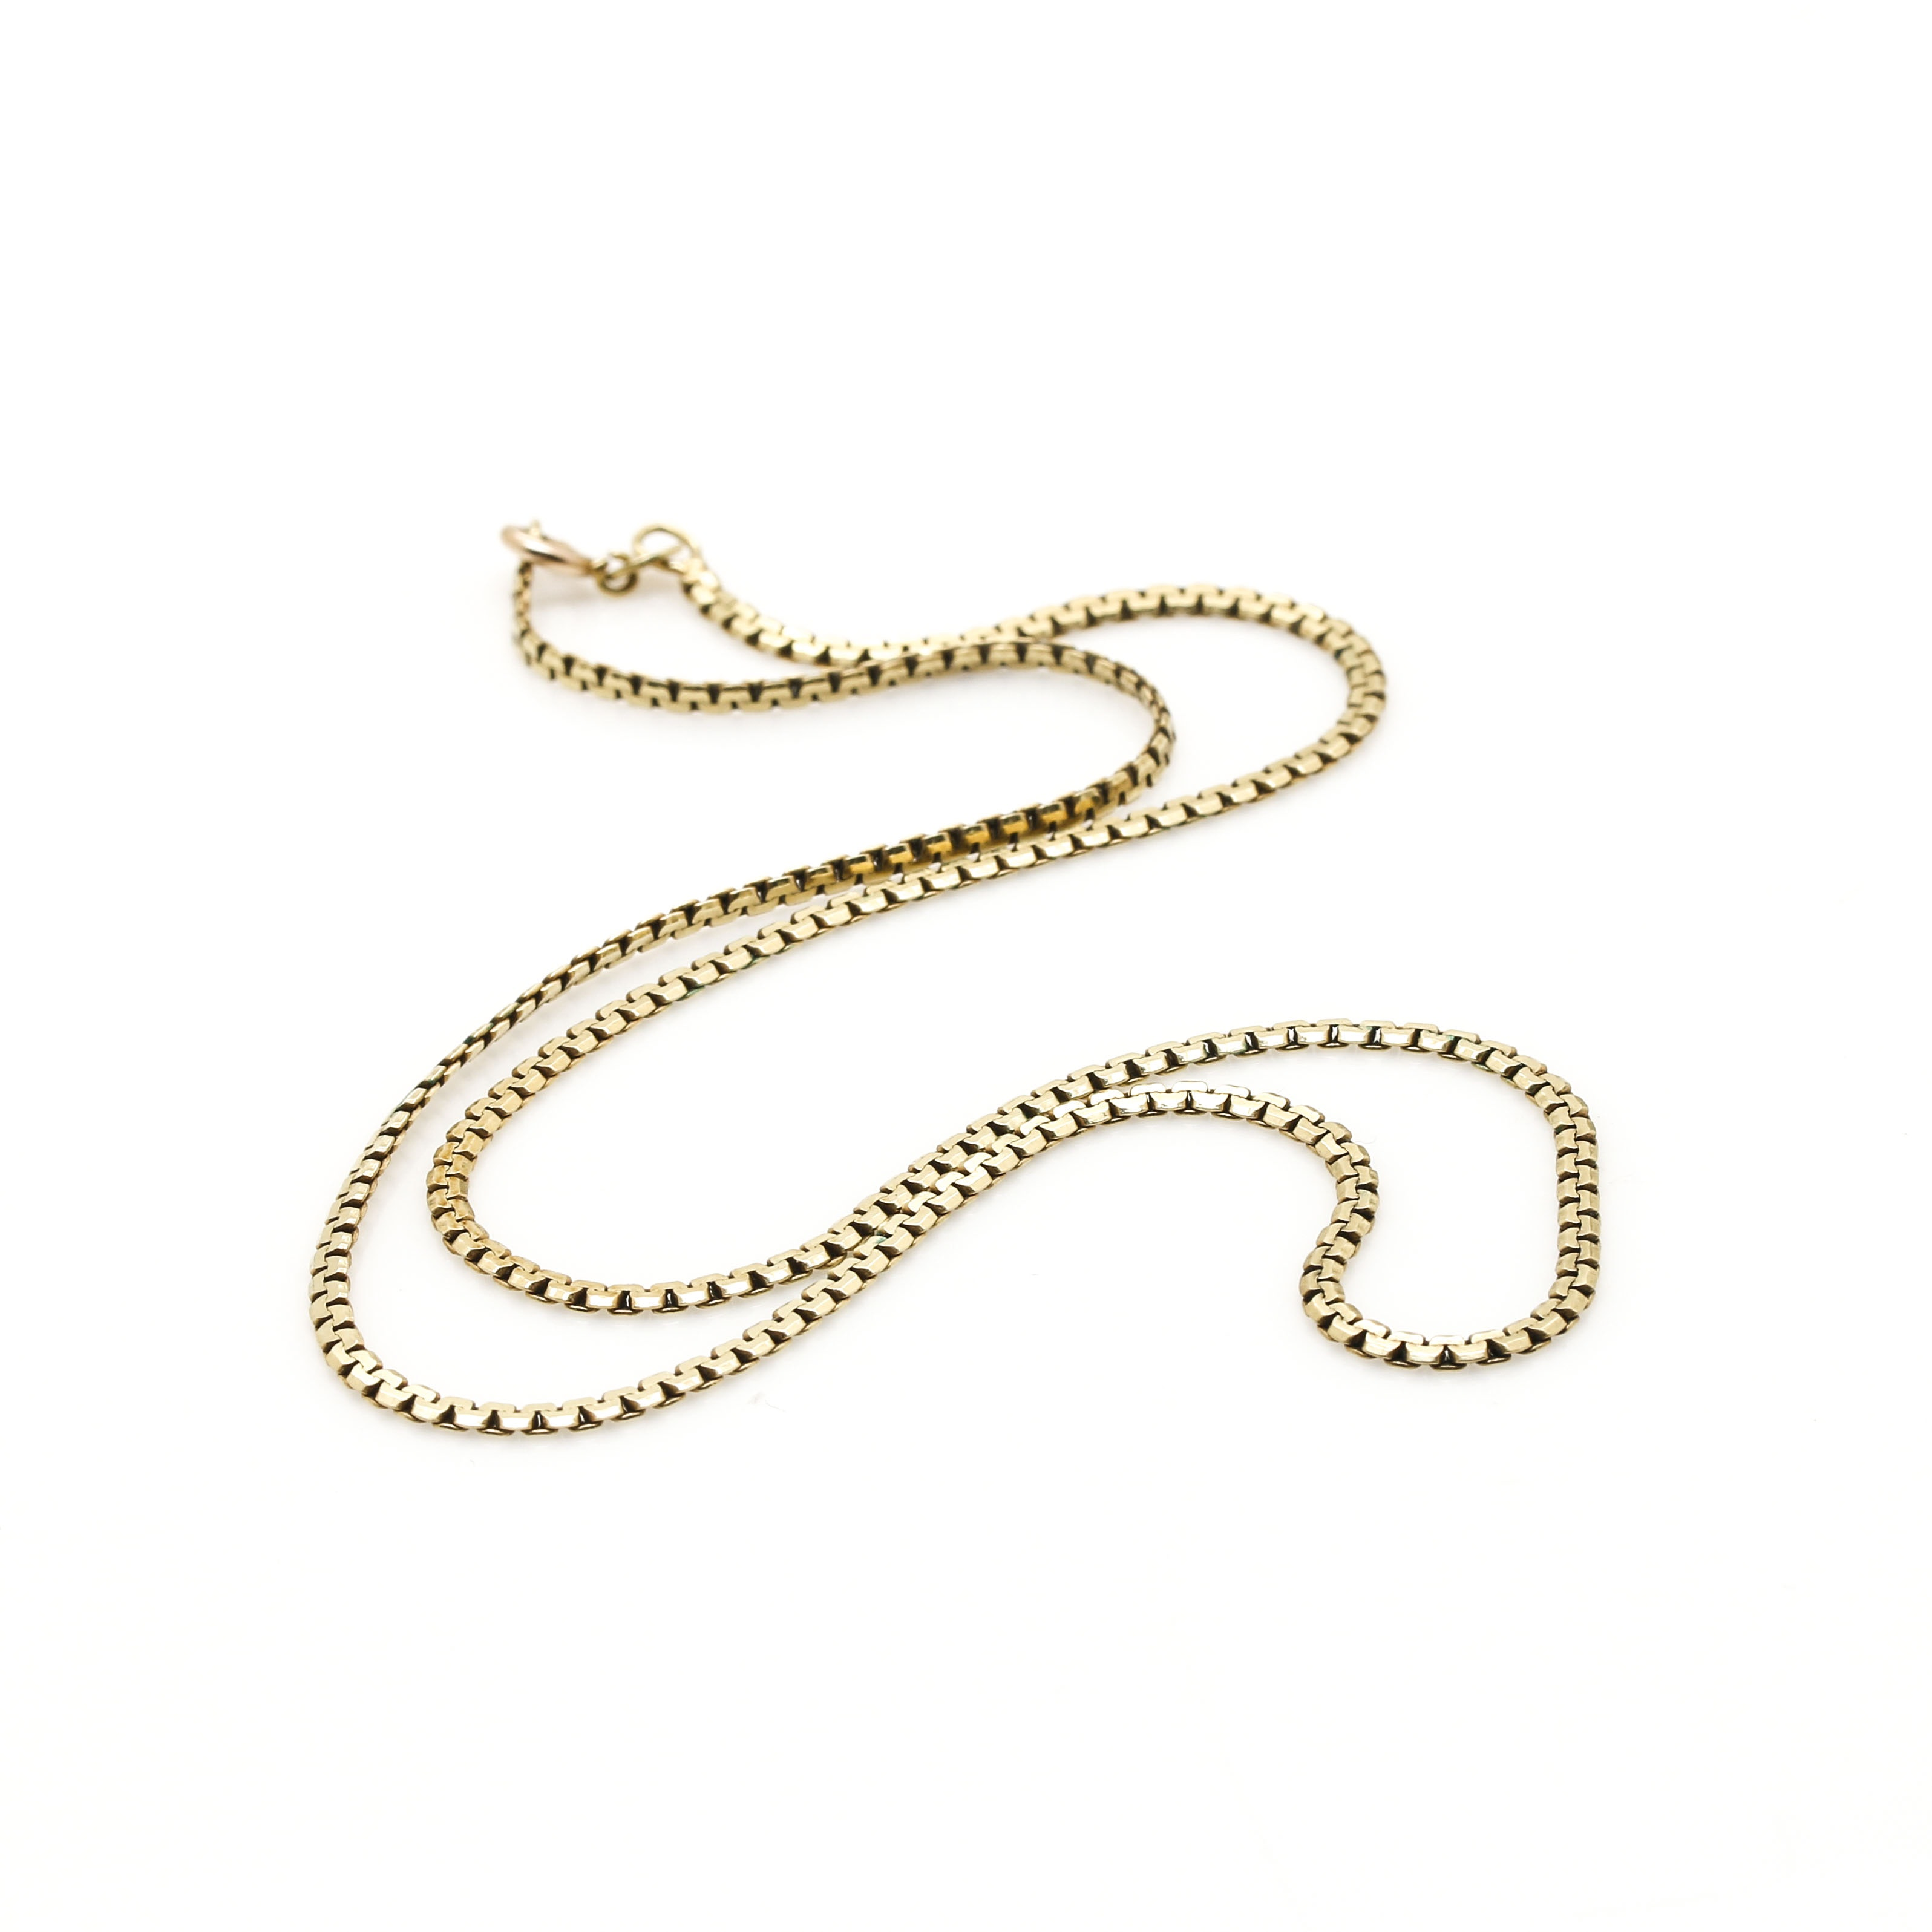 14K Yellow Gold C Link Chain Necklace